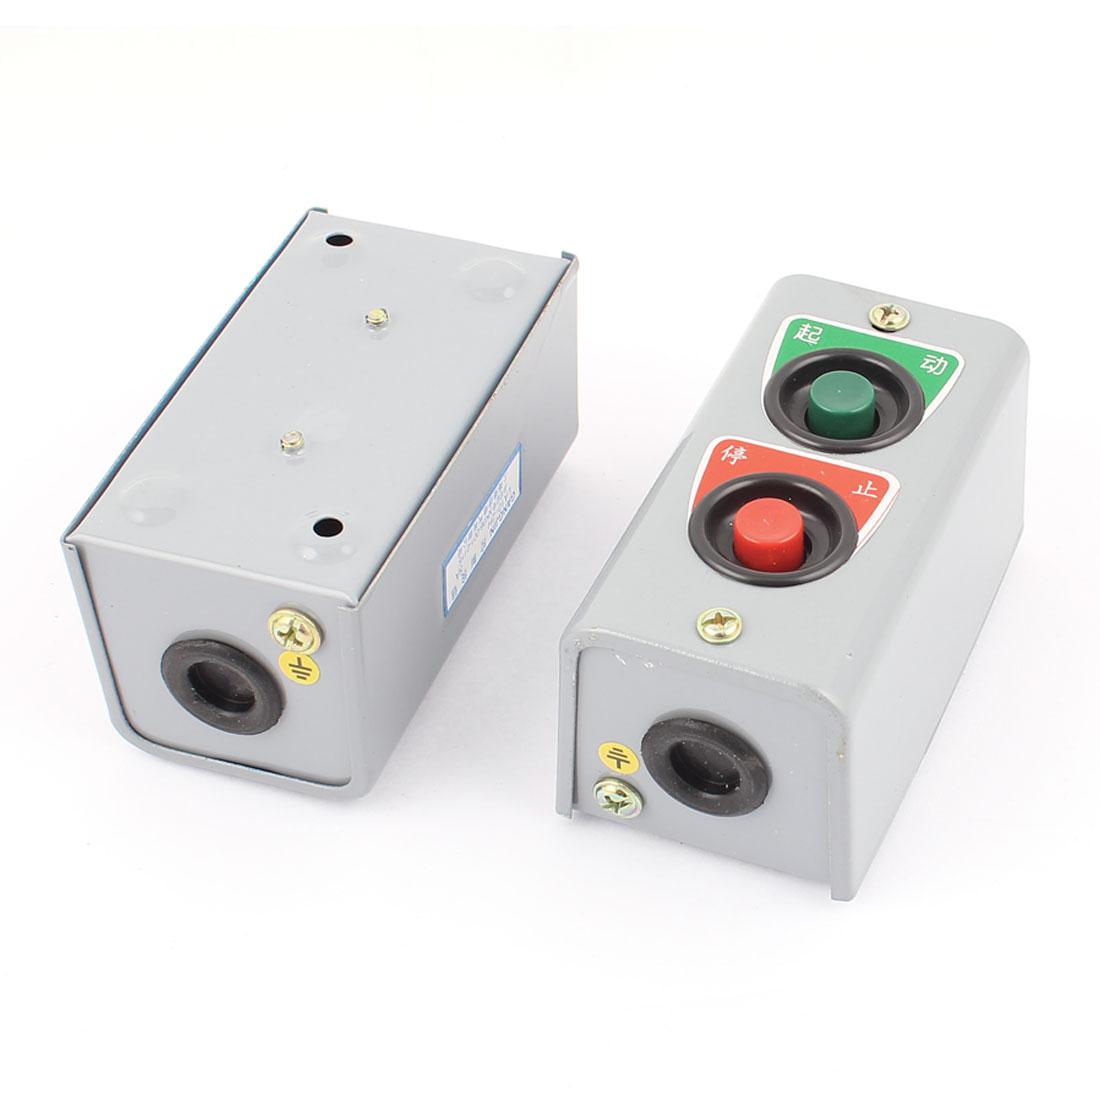 LA10-2H Momentary ON/OFF Push Button Control Switch AC 380V 5A 2pcs